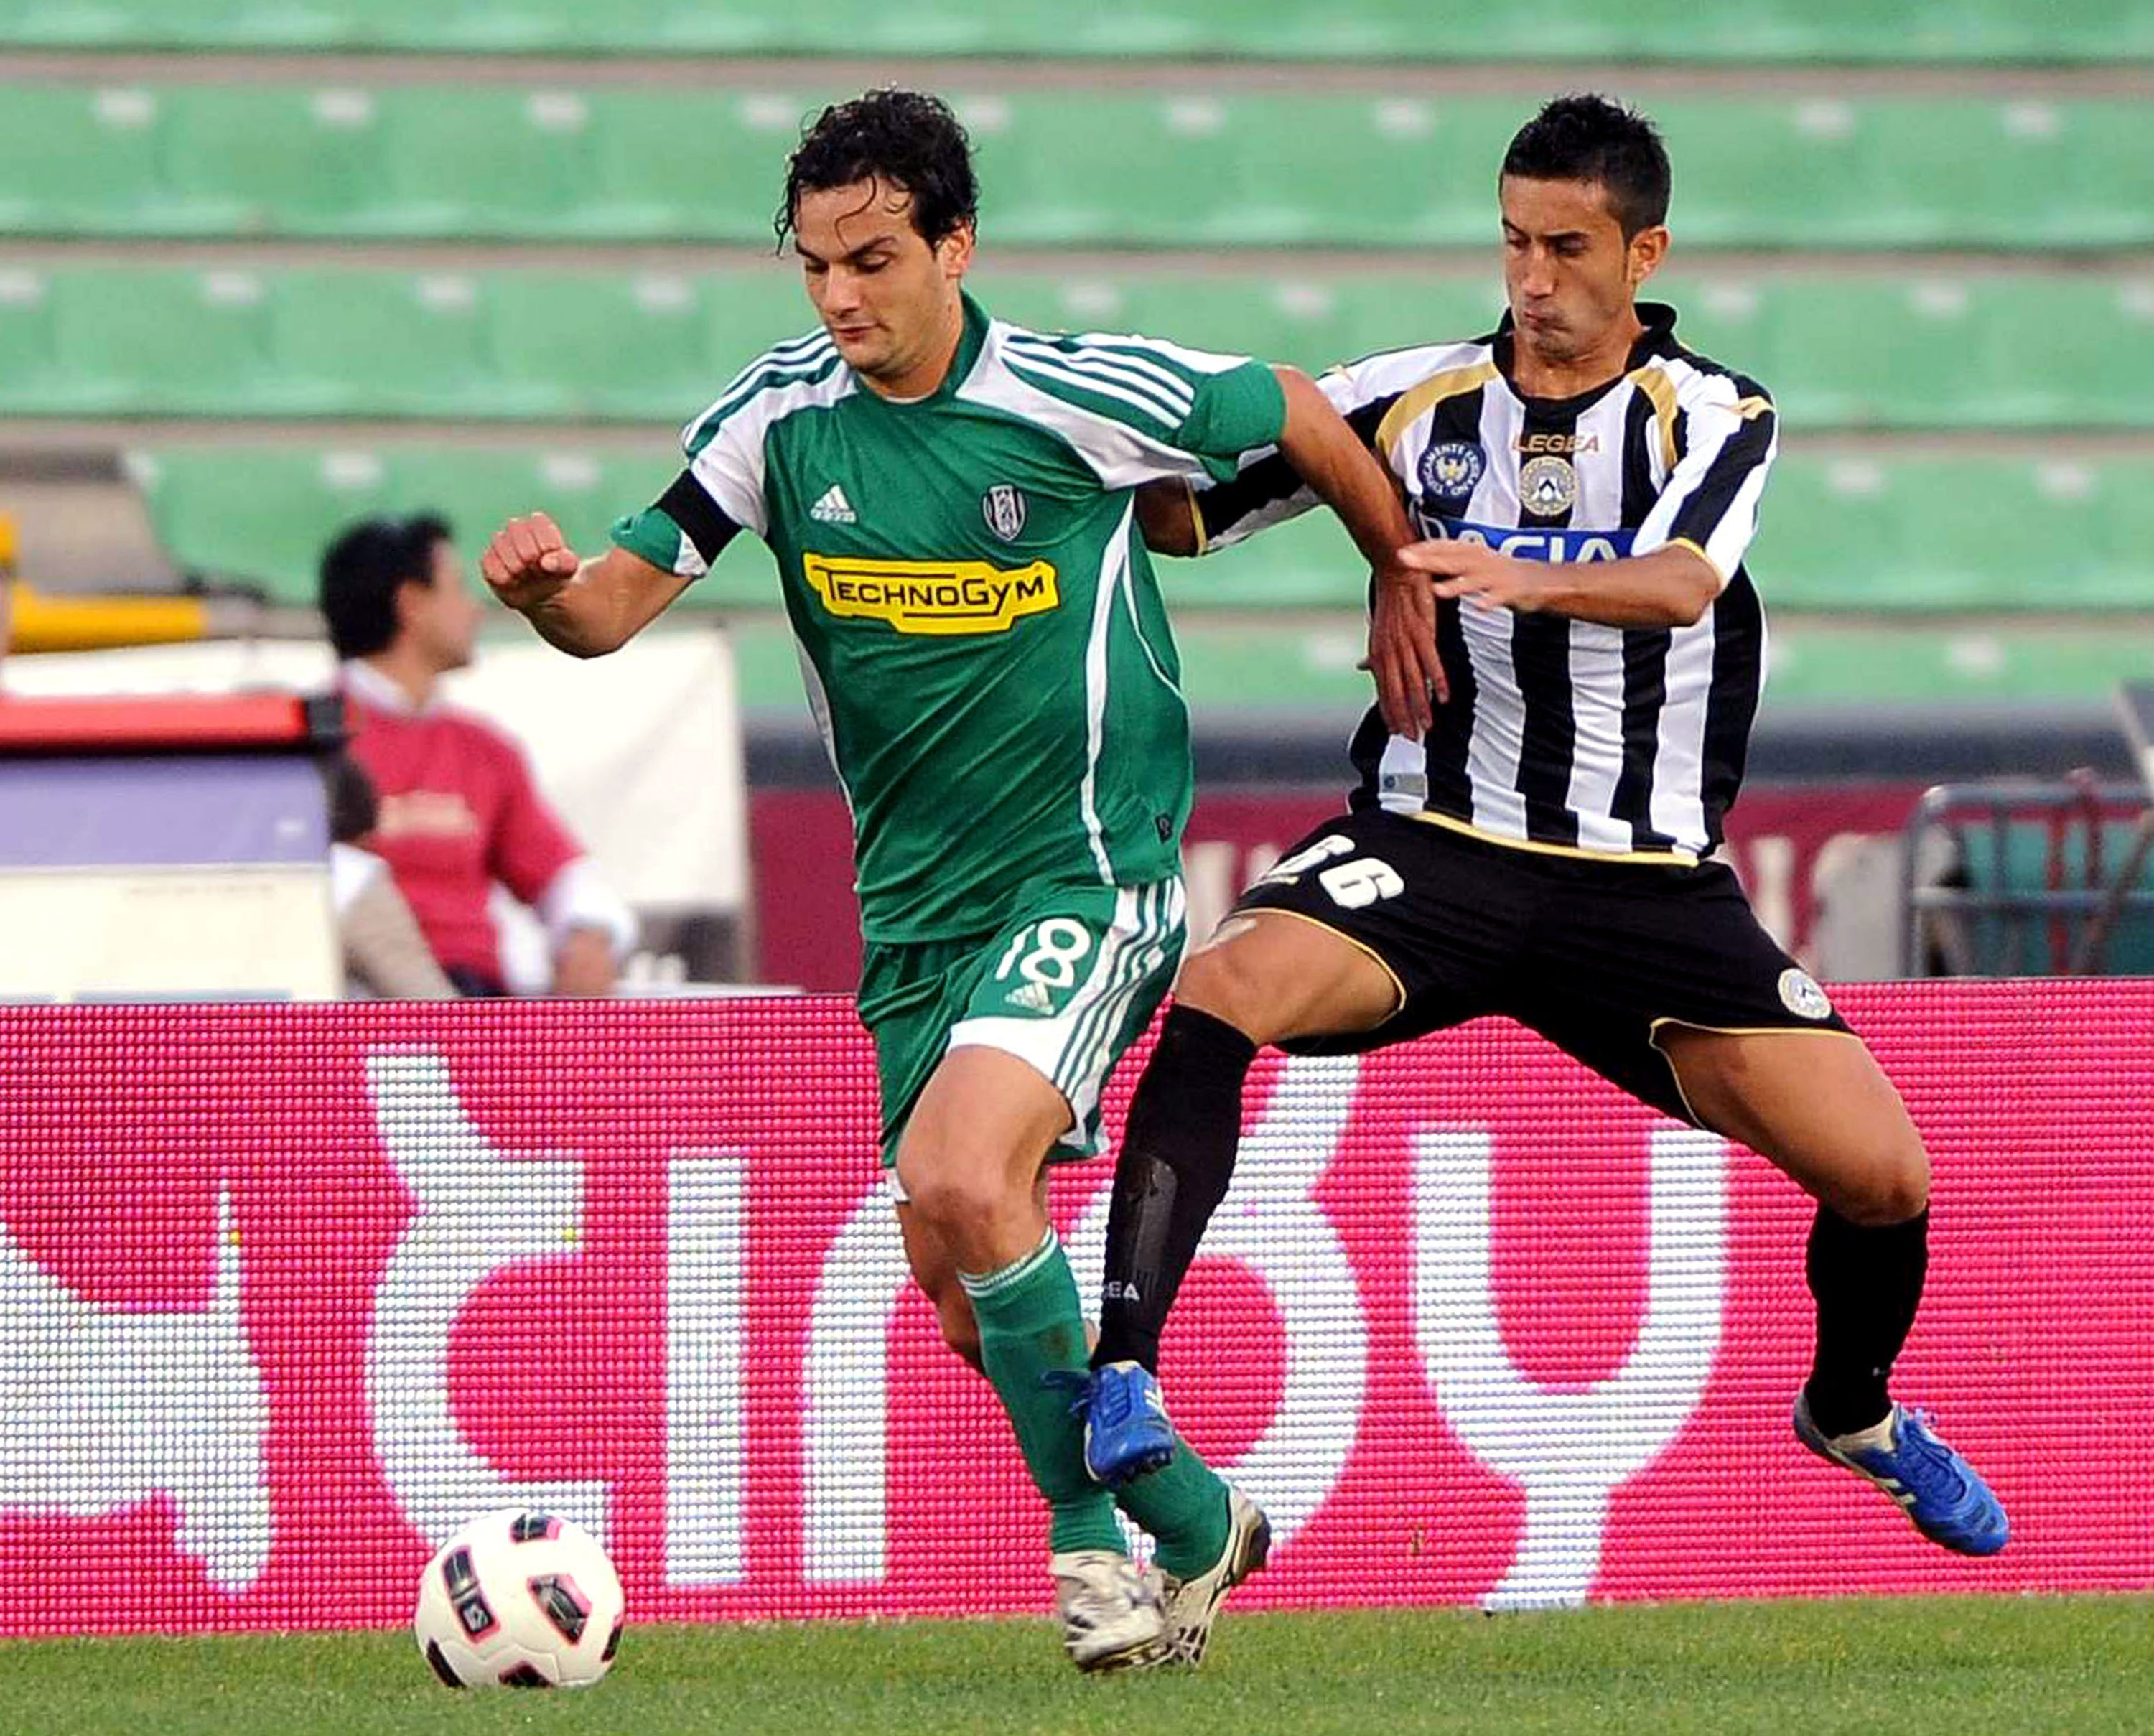 Midfielder Giampiero Pinzi has bounced around and is on his second tour of duty with Udinese.